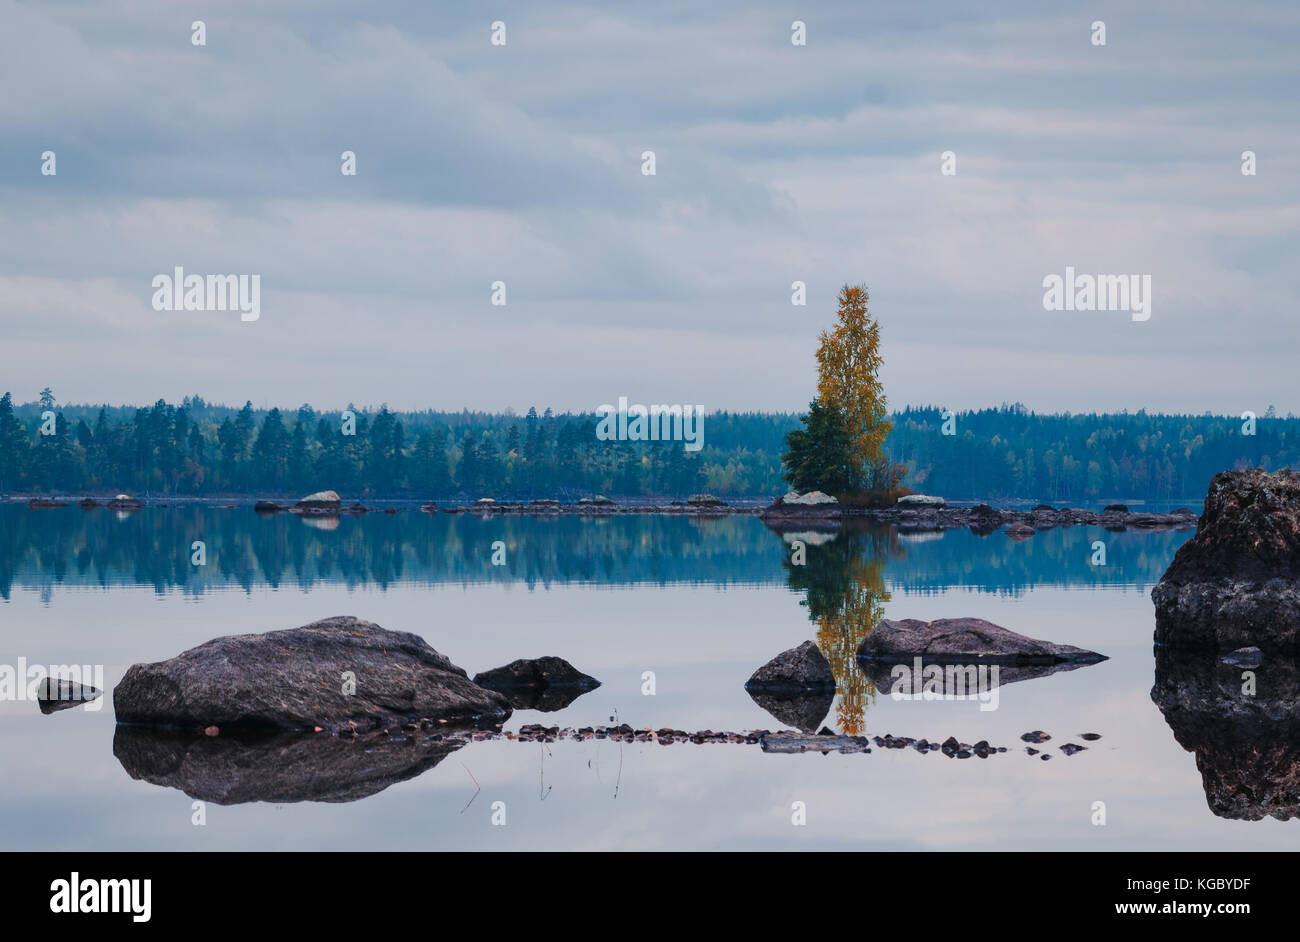 Lonely tree in a lake in the middle of nowhere in Sweden - Stock Image